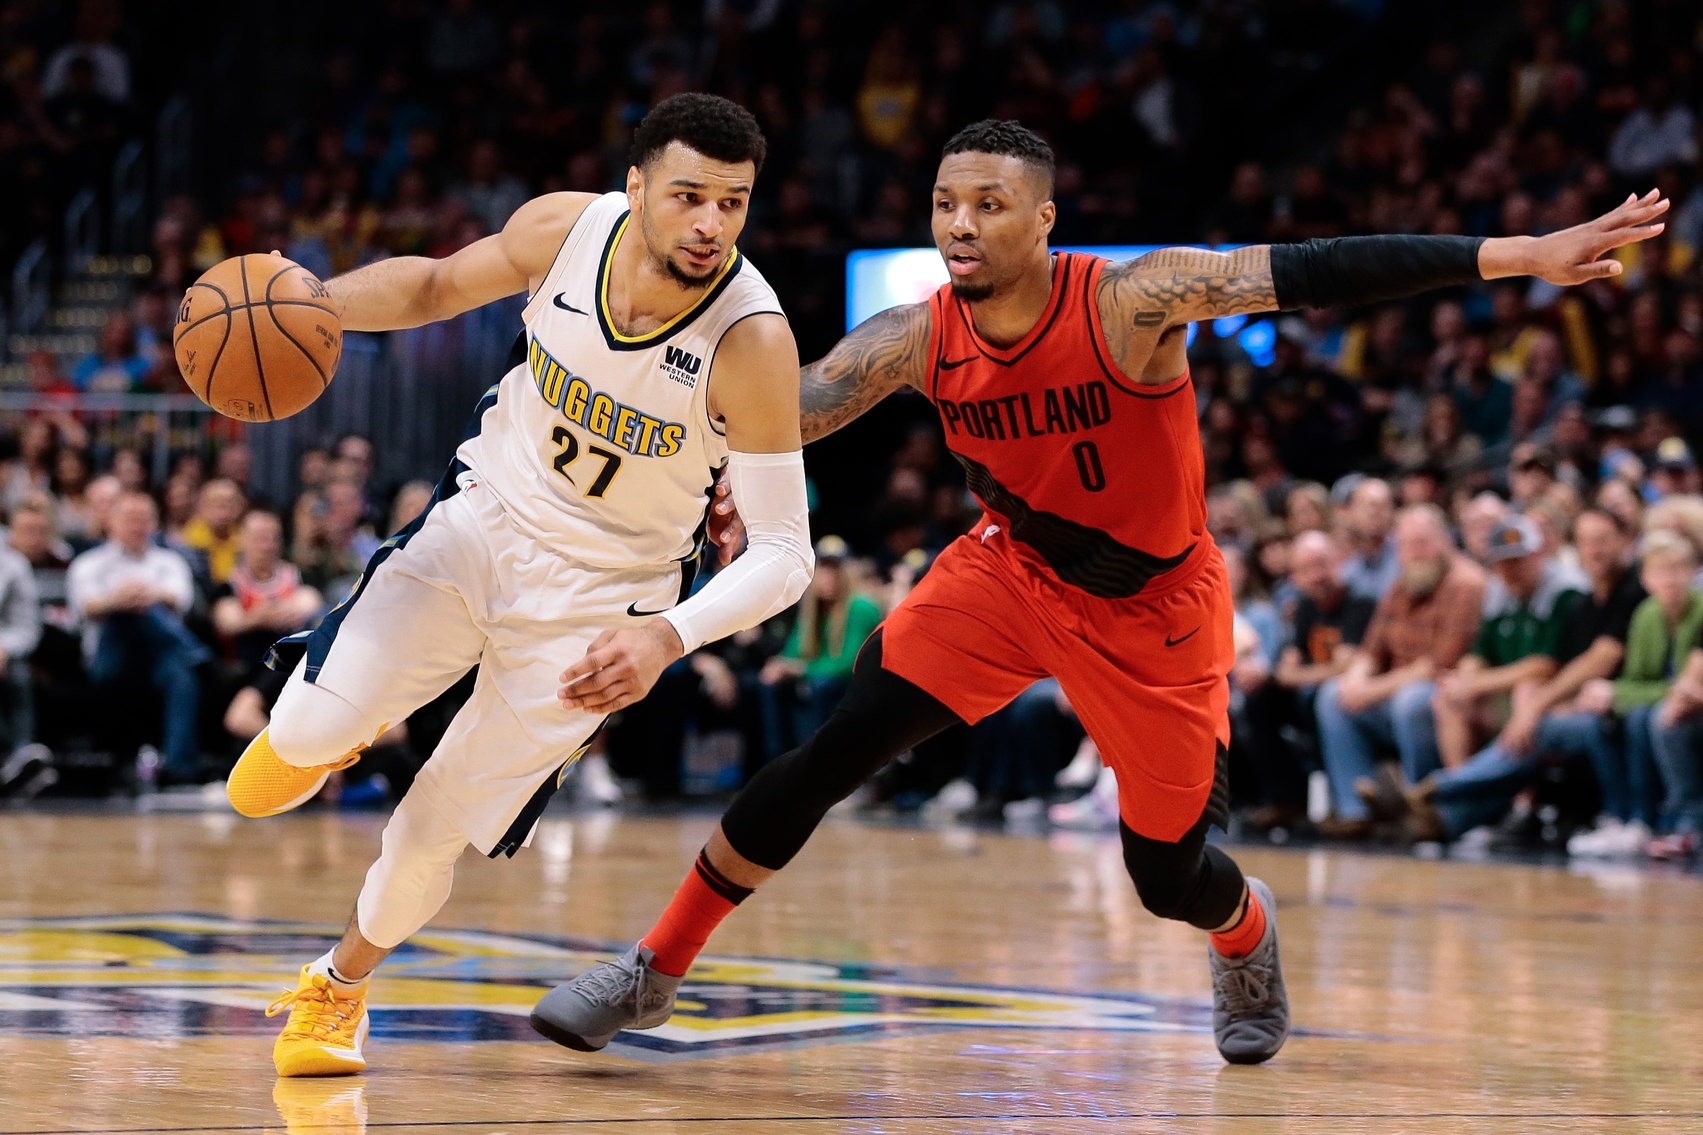 Jamal Murray and the Nuggets take on Damian Lillard and the Trail Blazers on Wednesday in both teams' season opener.